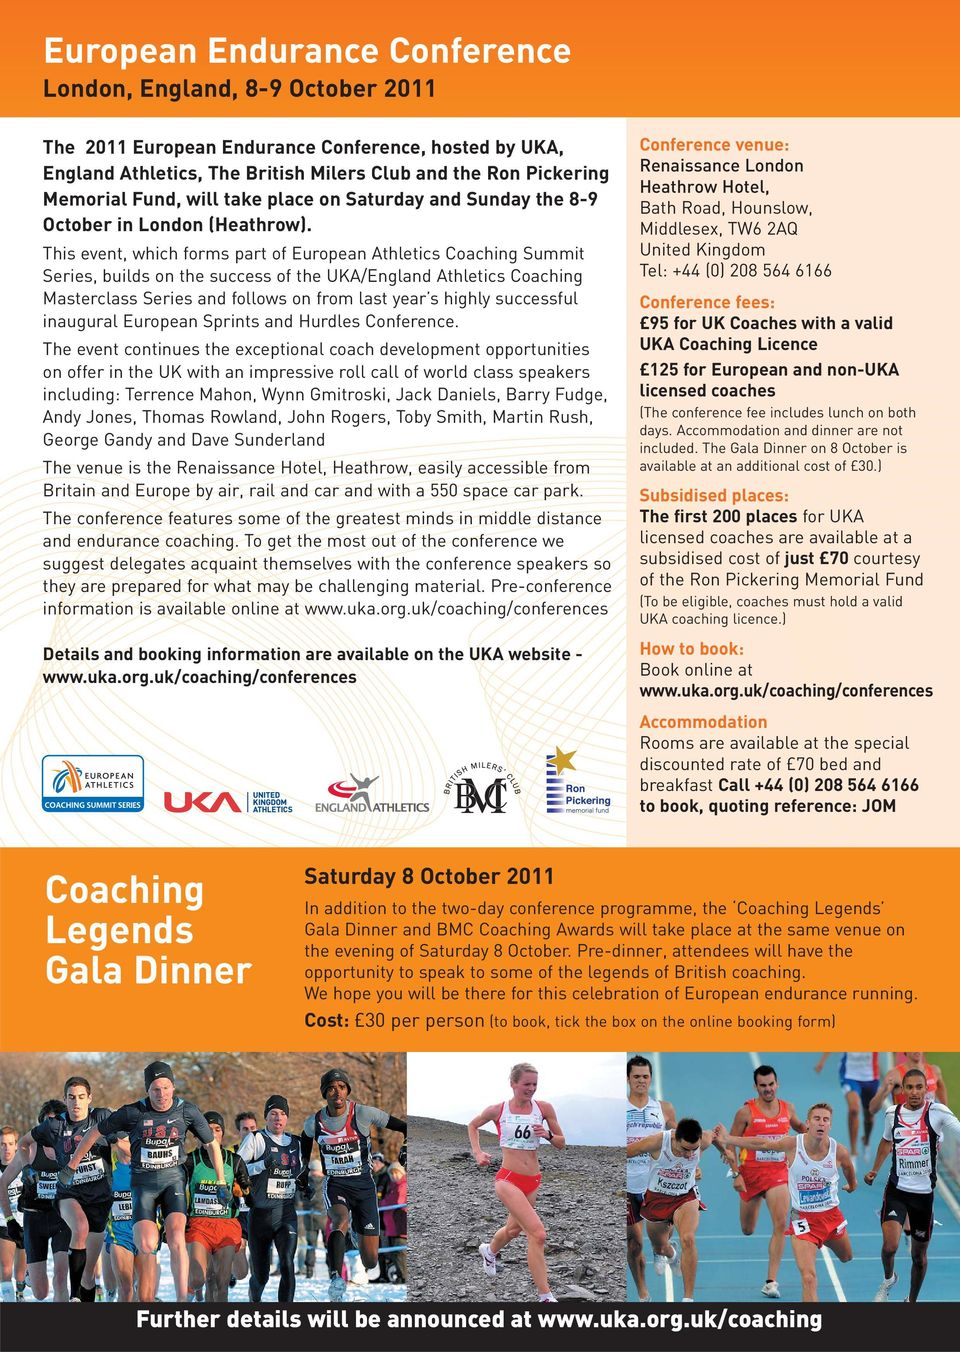 This event, which forms part of European Athletics Coaching Summit Series, builds on the success of the UKA/England Athletics Coaching Masterclass Series and follows on from last year s highly